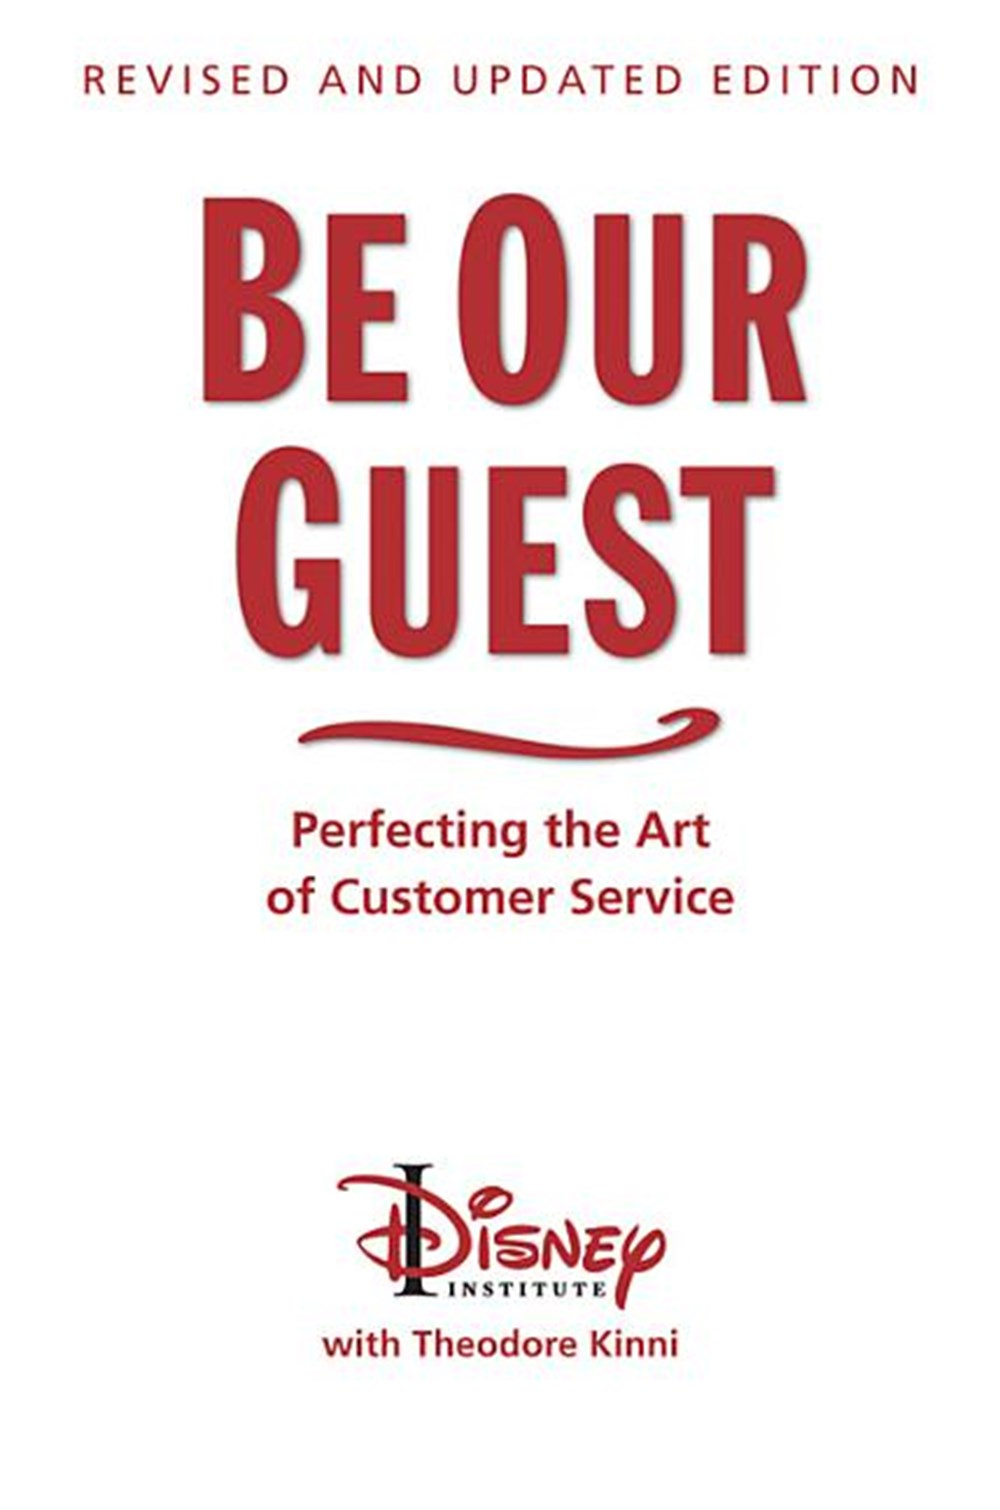 Be Our Guest (10th Anniversary Updated Edition) Perfecting the Art of Customer Service (Revised, Upd